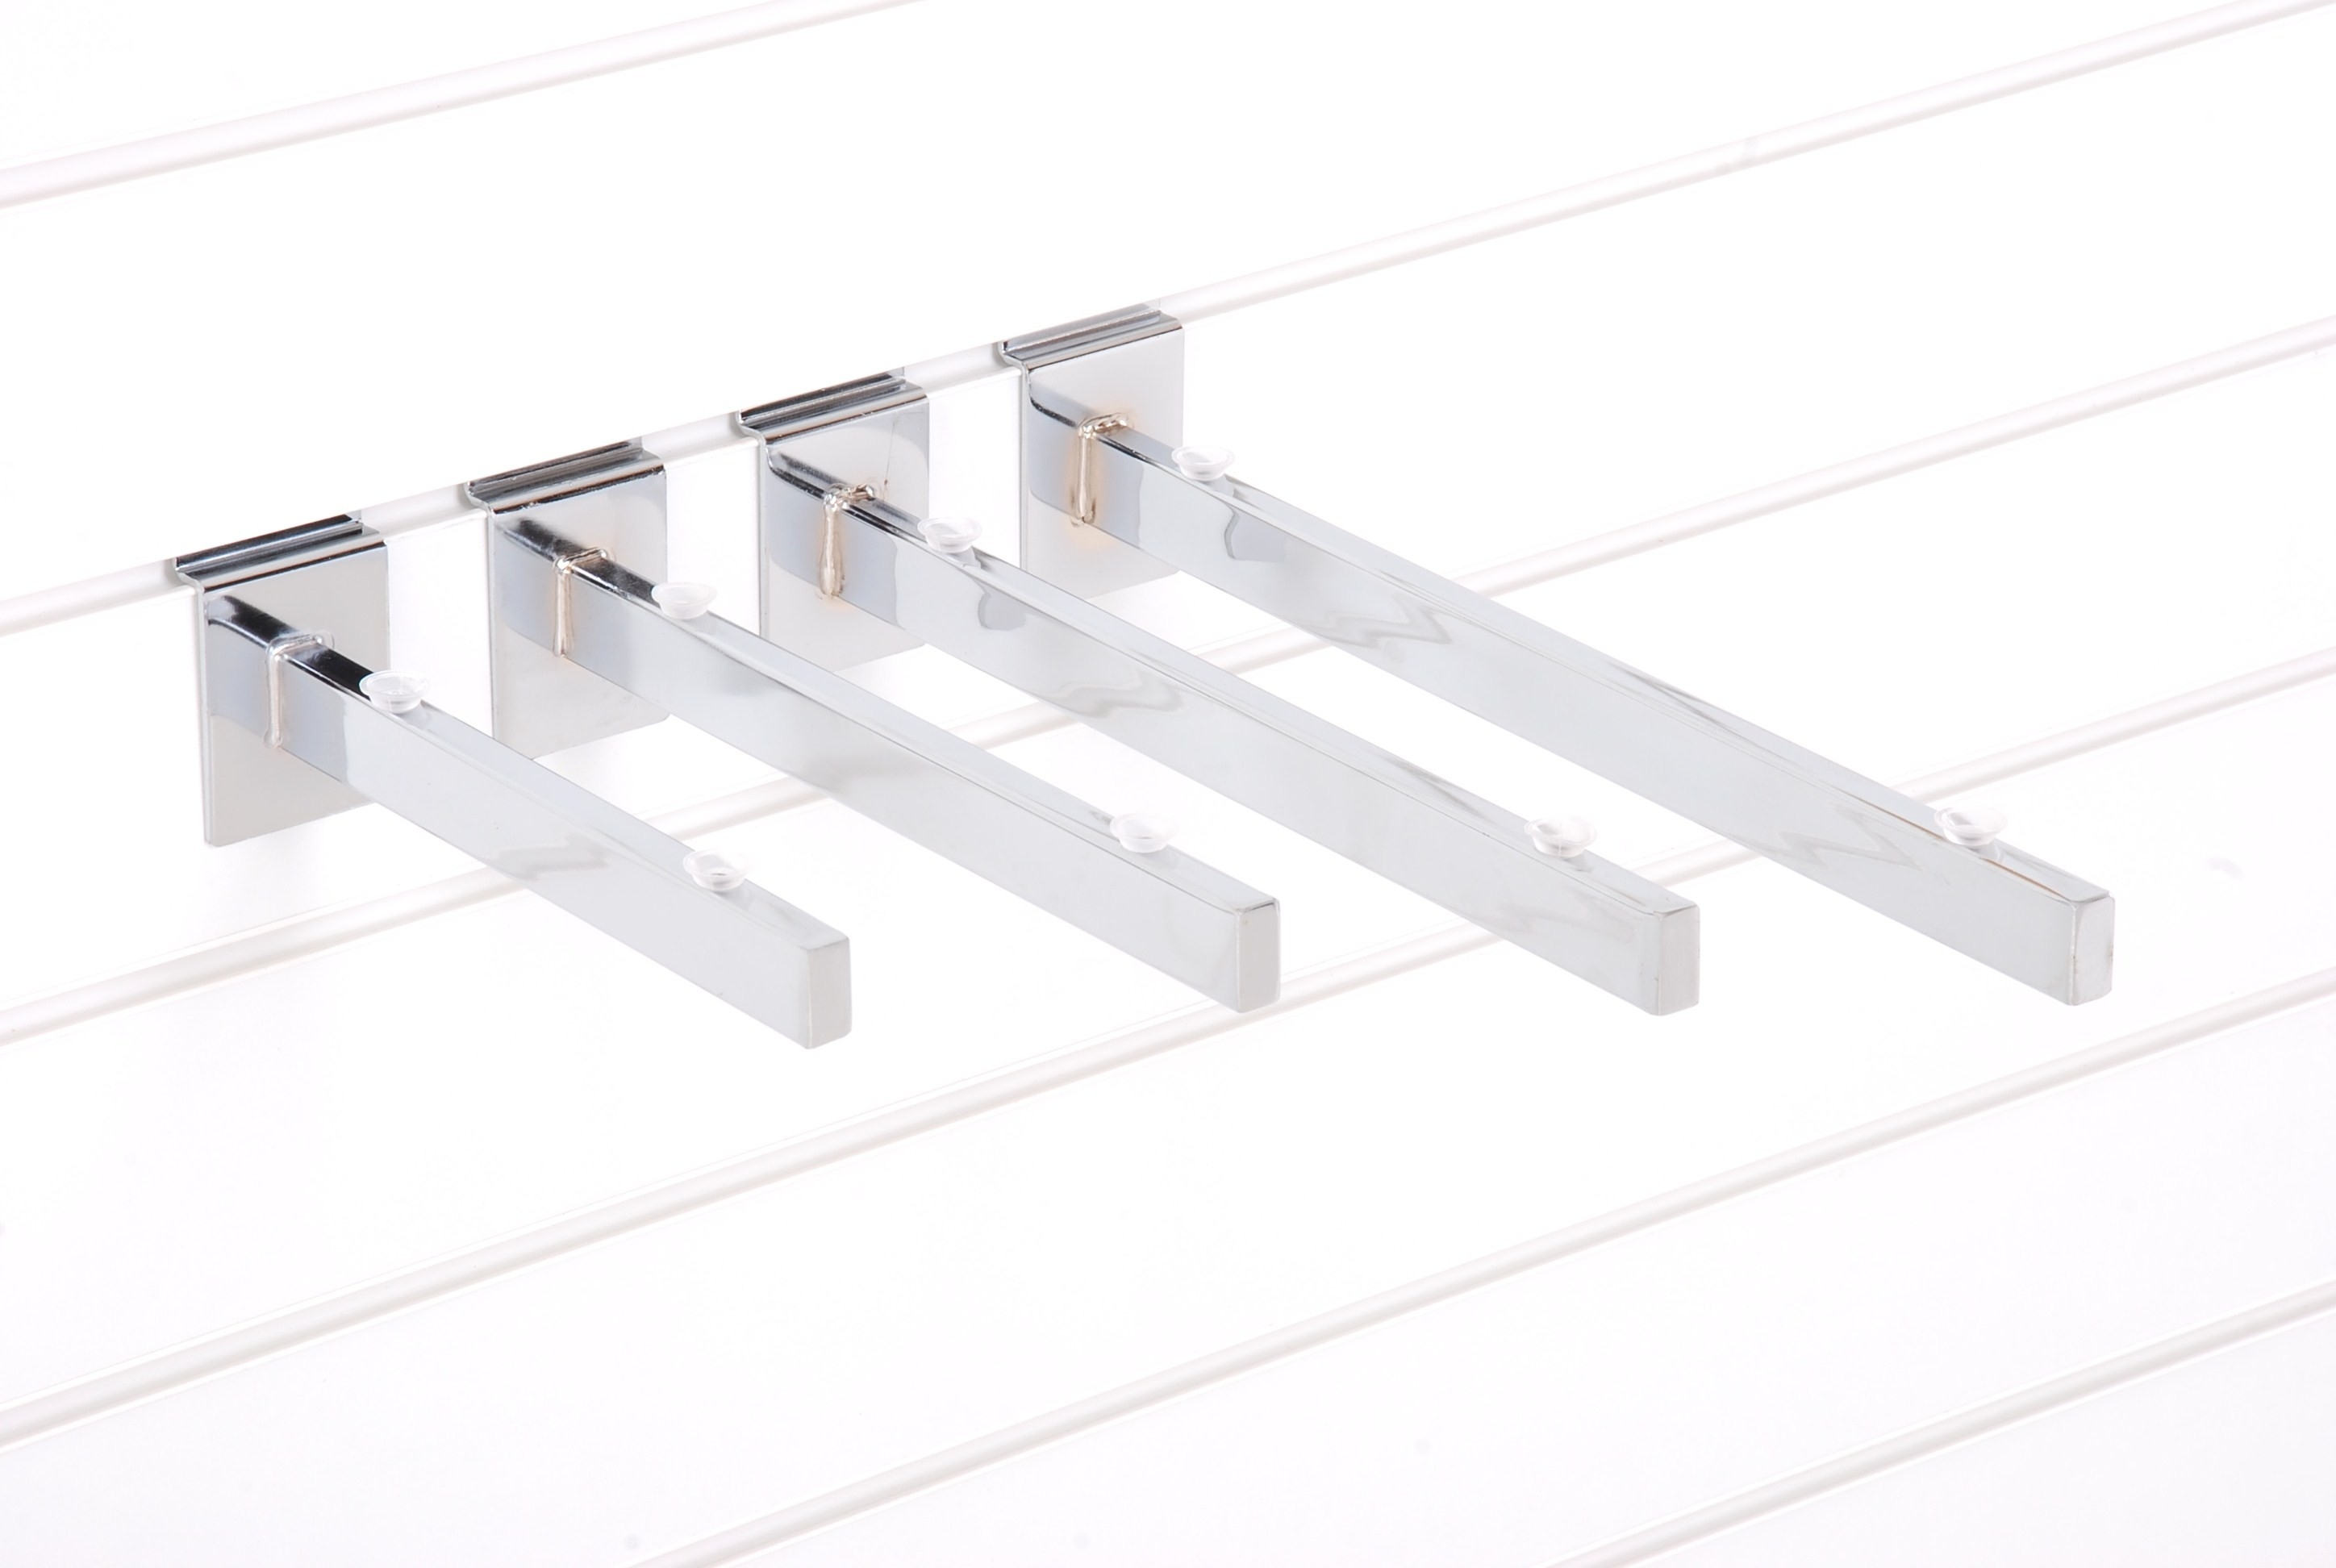 Tips Ideas Interesting Floating Shelves Material Design With Regarding Glass Shelf Brackets Floating On Air (#11 of 12)